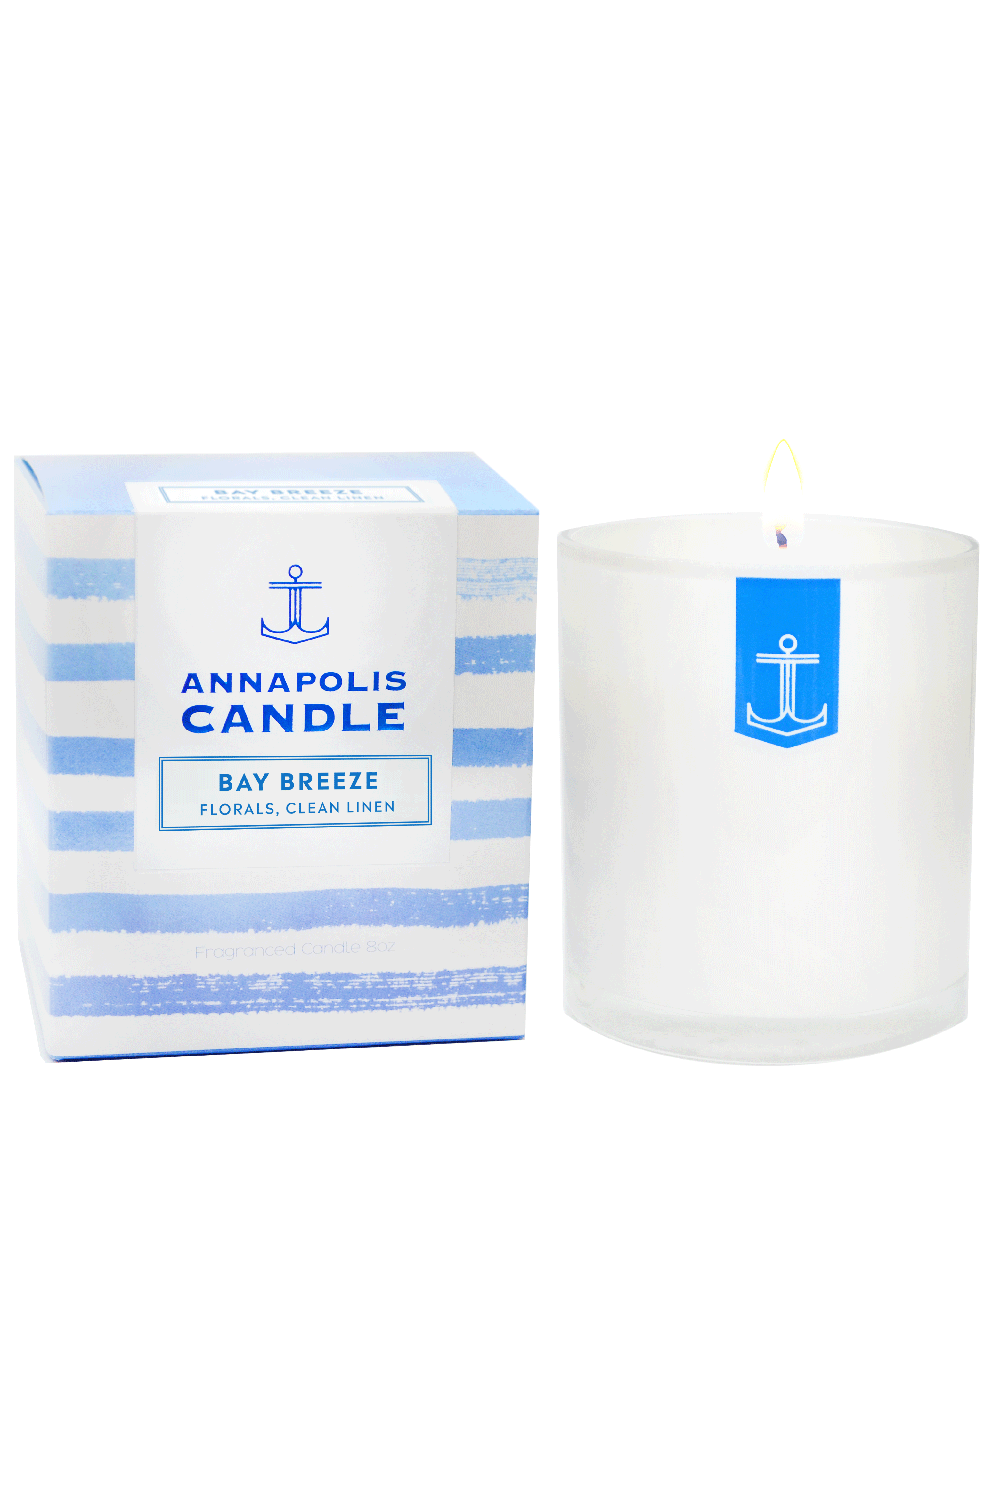 *NEW* Boxed Annapolis Candle - Bay Breeze